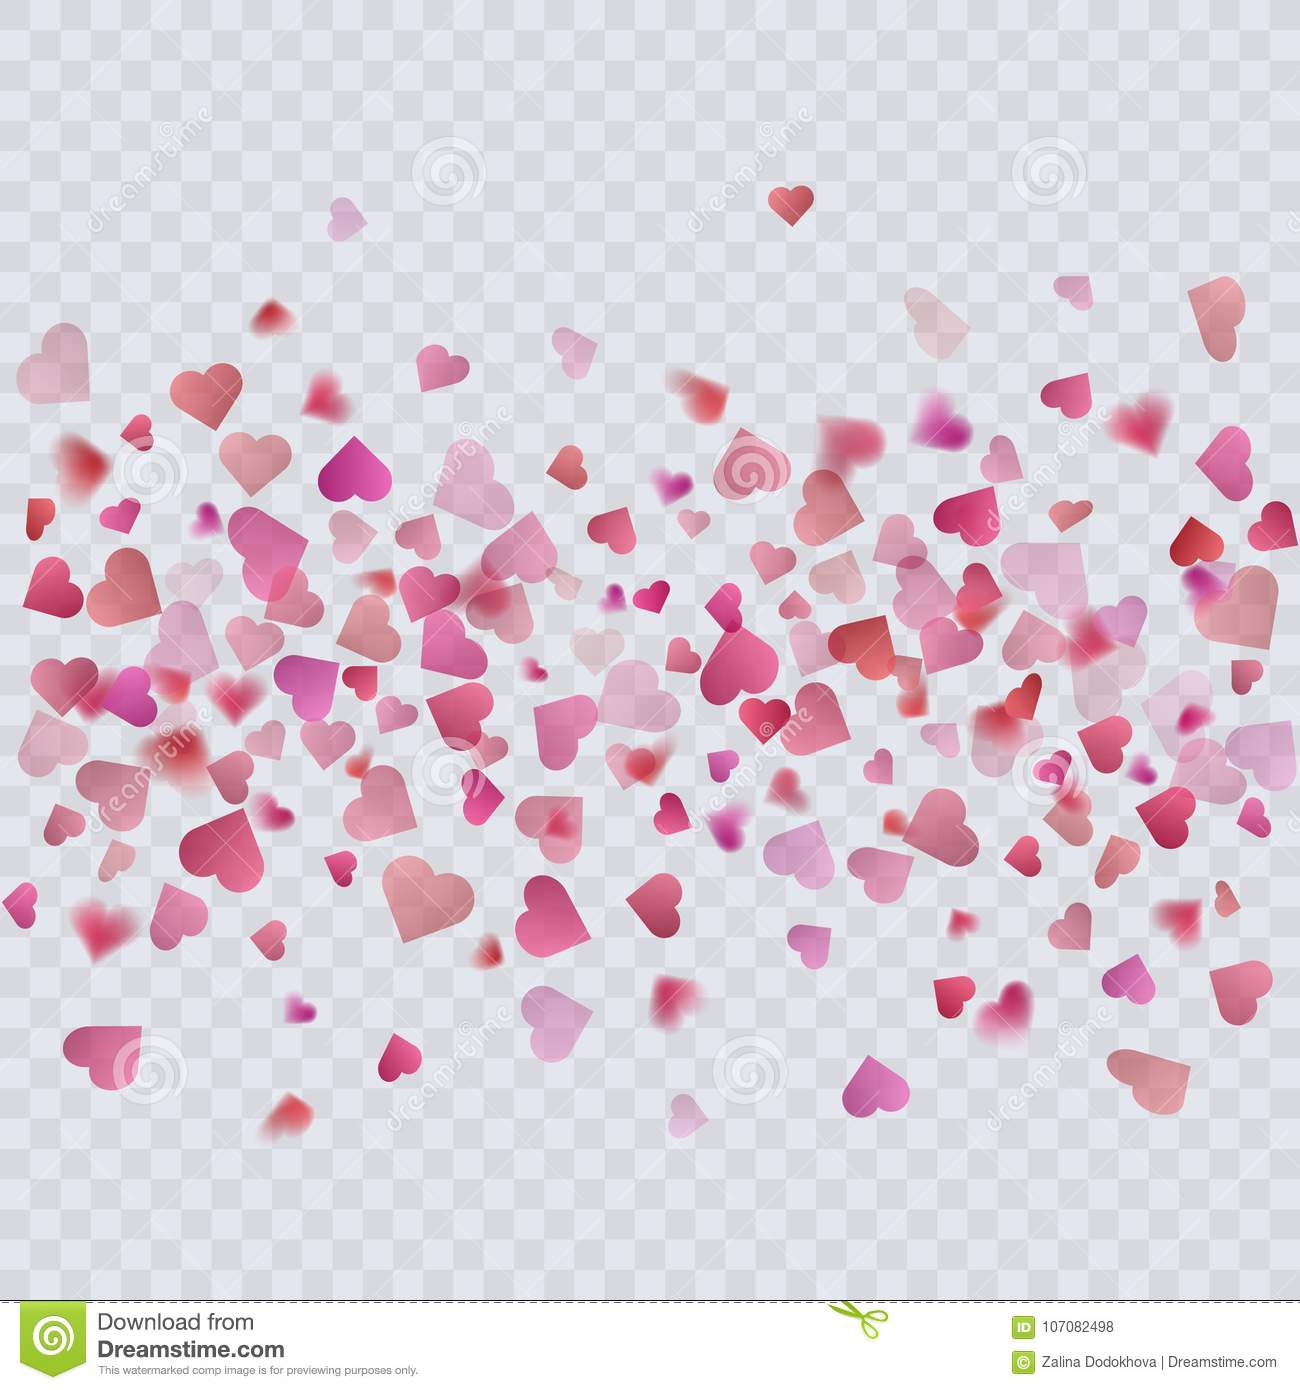 Heart confetti on transparent background decoration for your download heart confetti on transparent background decoration for your valentine s day greeting cards m4hsunfo